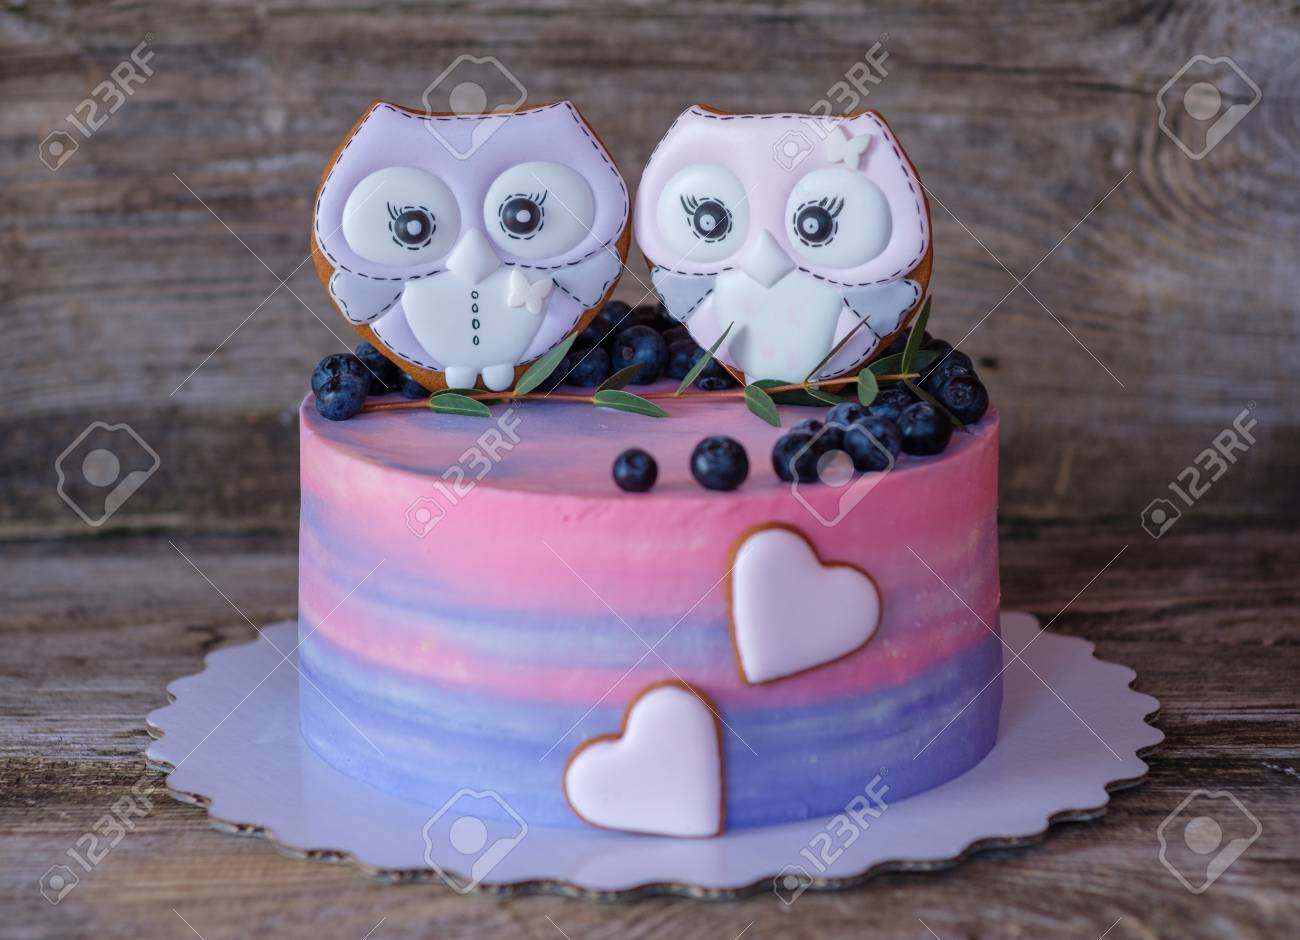 Beautiful Homemade Cake With Pink And Blue Cheese Cream Decorated Gingerbread In The